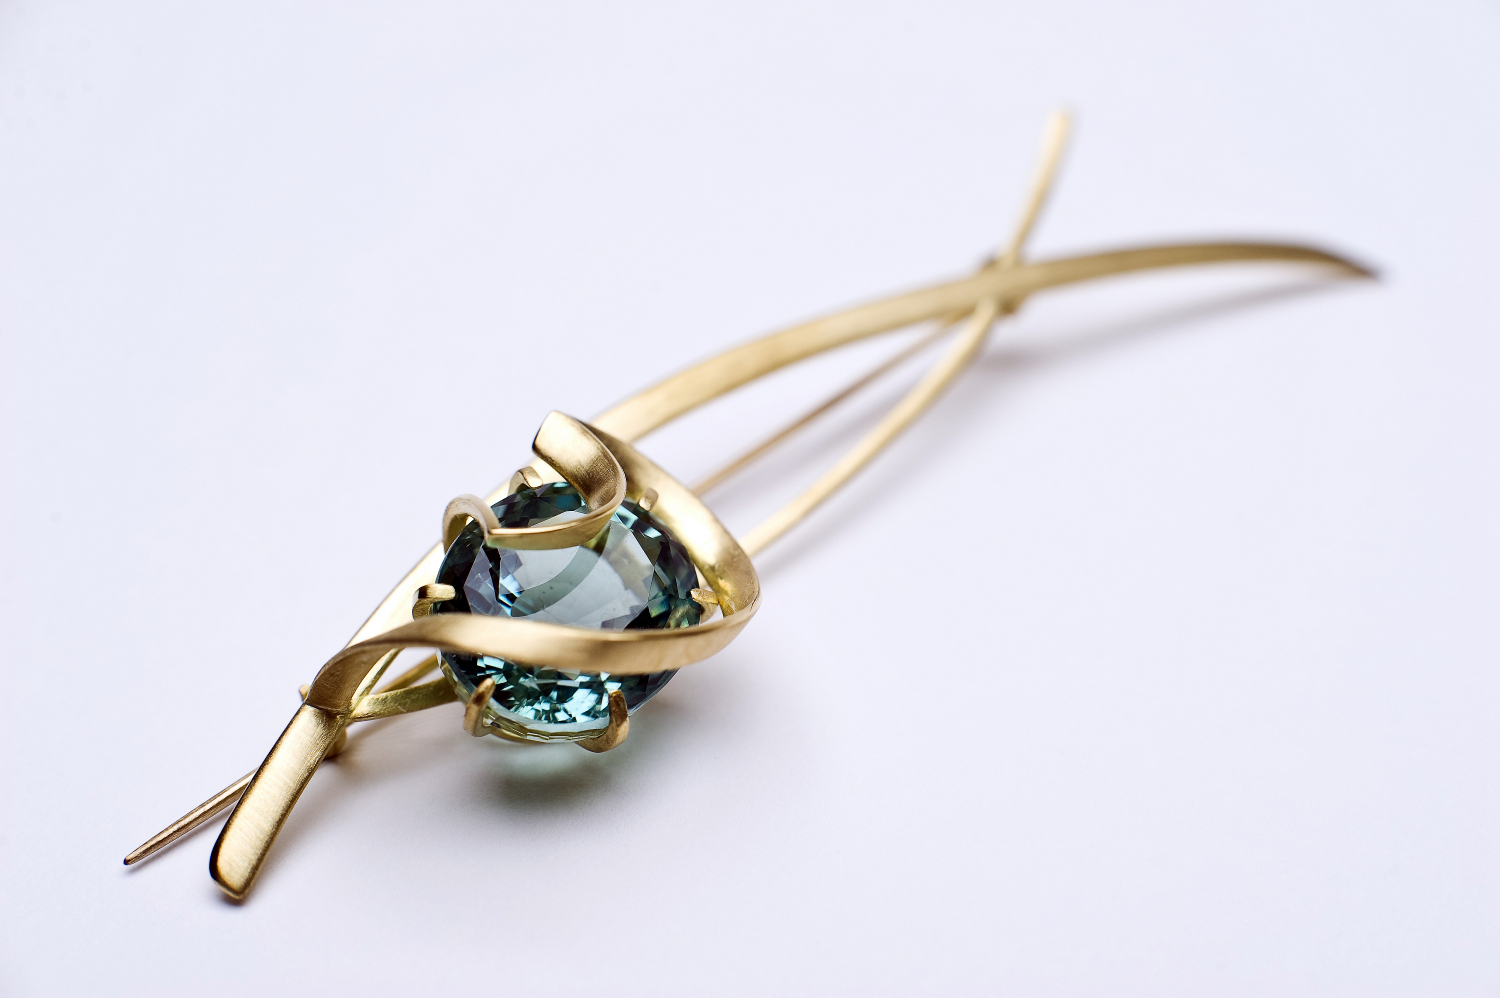 Leyton Stone   brooch, Sarah Warsop, 18ct gold with aquamarine, 2014. Photo: Steve Speller